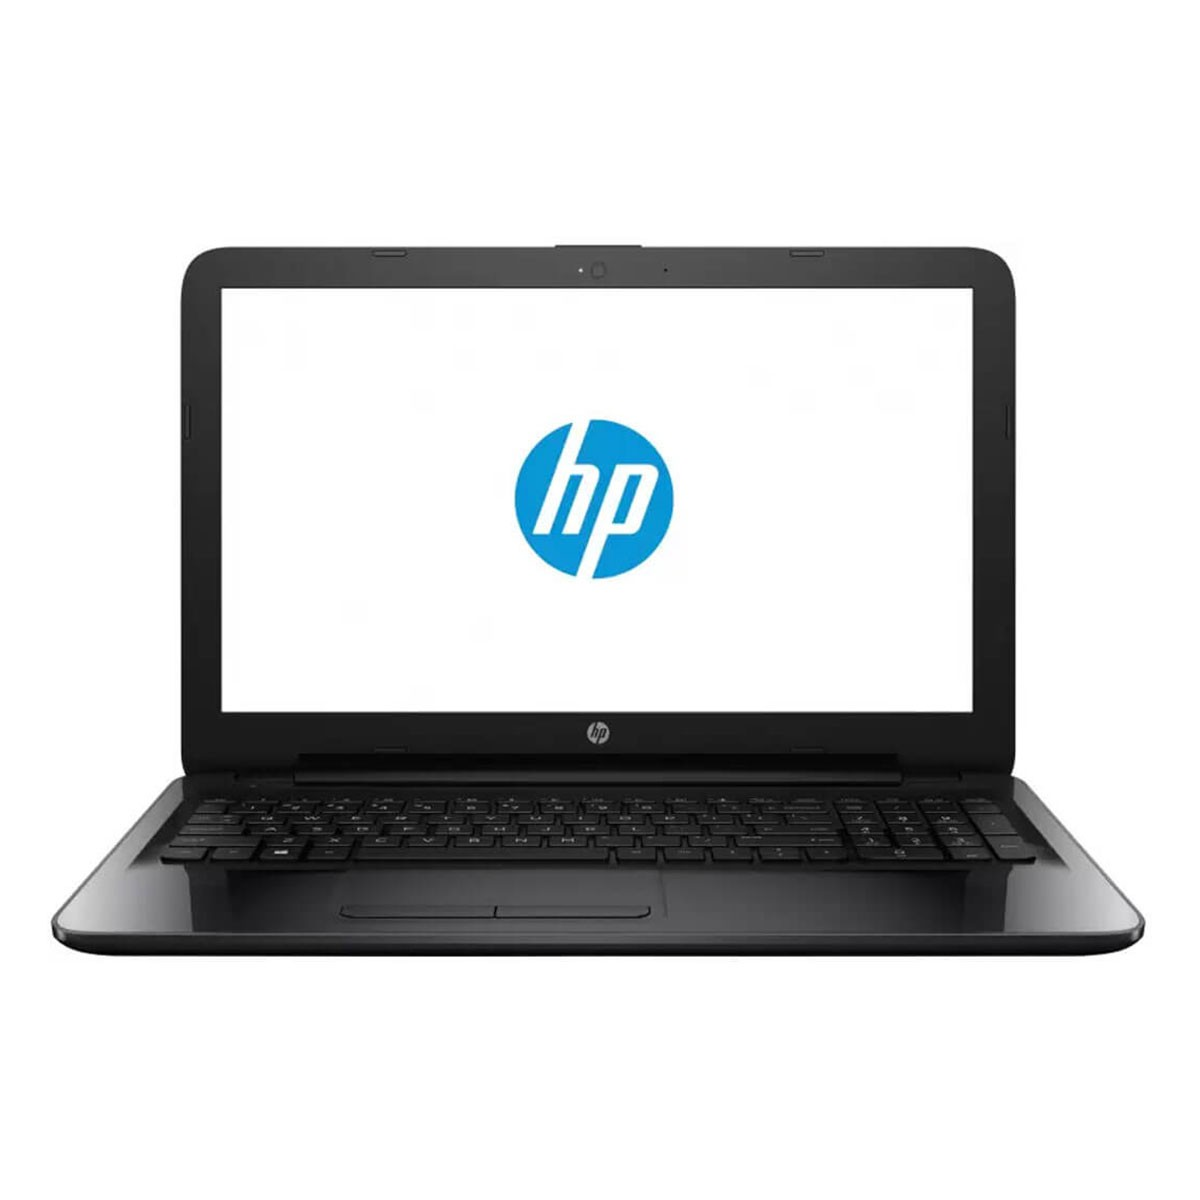 "HP 15-BE003TU Laptop (5th Gen i3-5005U/4GB/1TB/Intel HD Graphics/Dos/15.6"")"